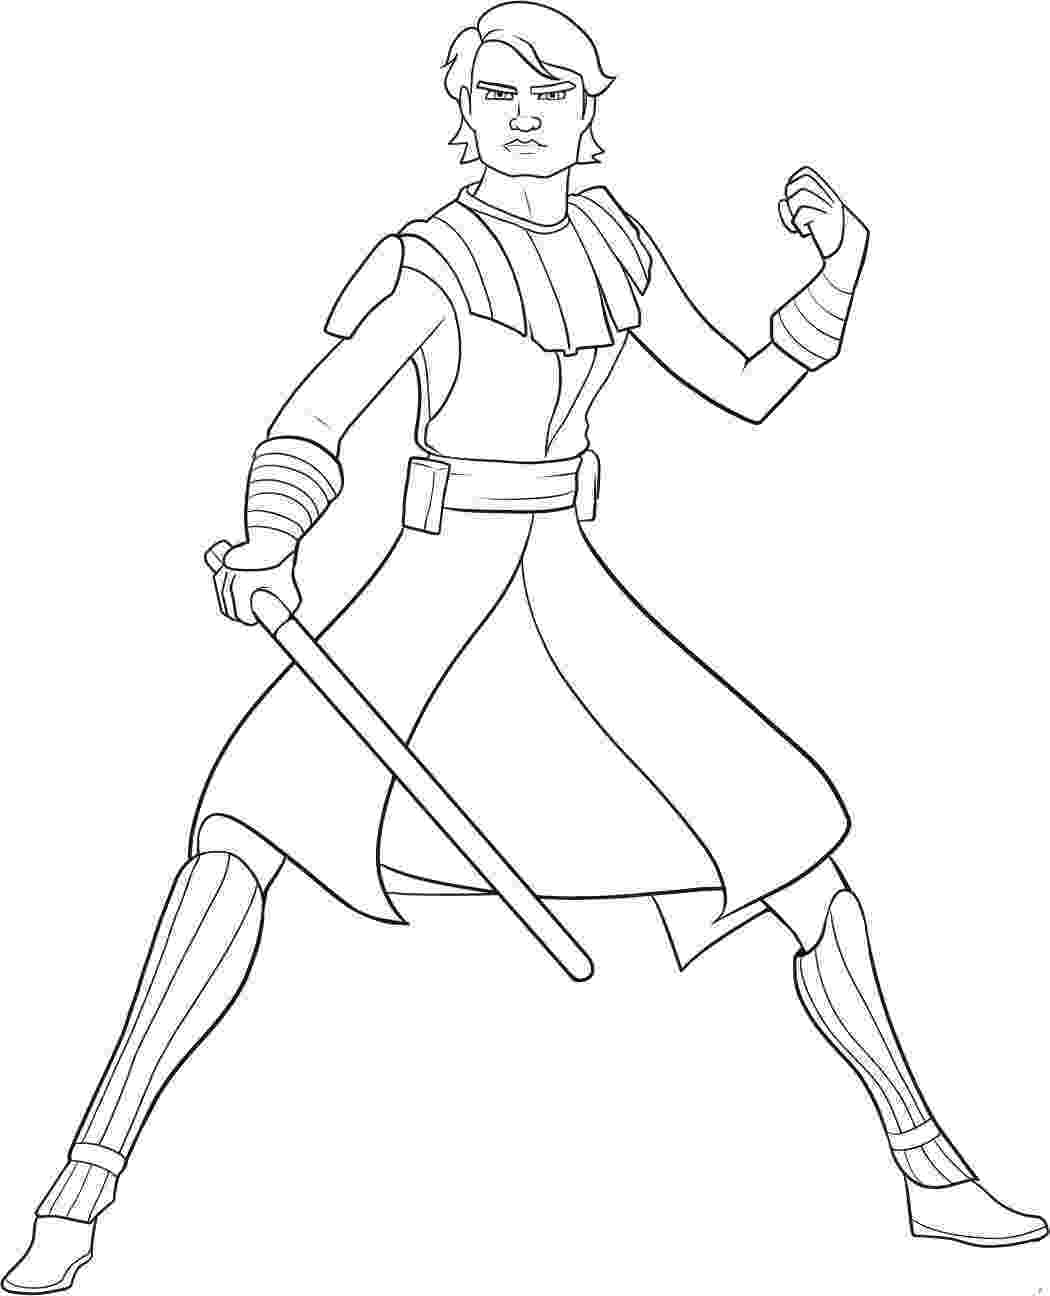 star wars coloring pages printable star wars coloring pages learn to coloring wars star coloring printable pages